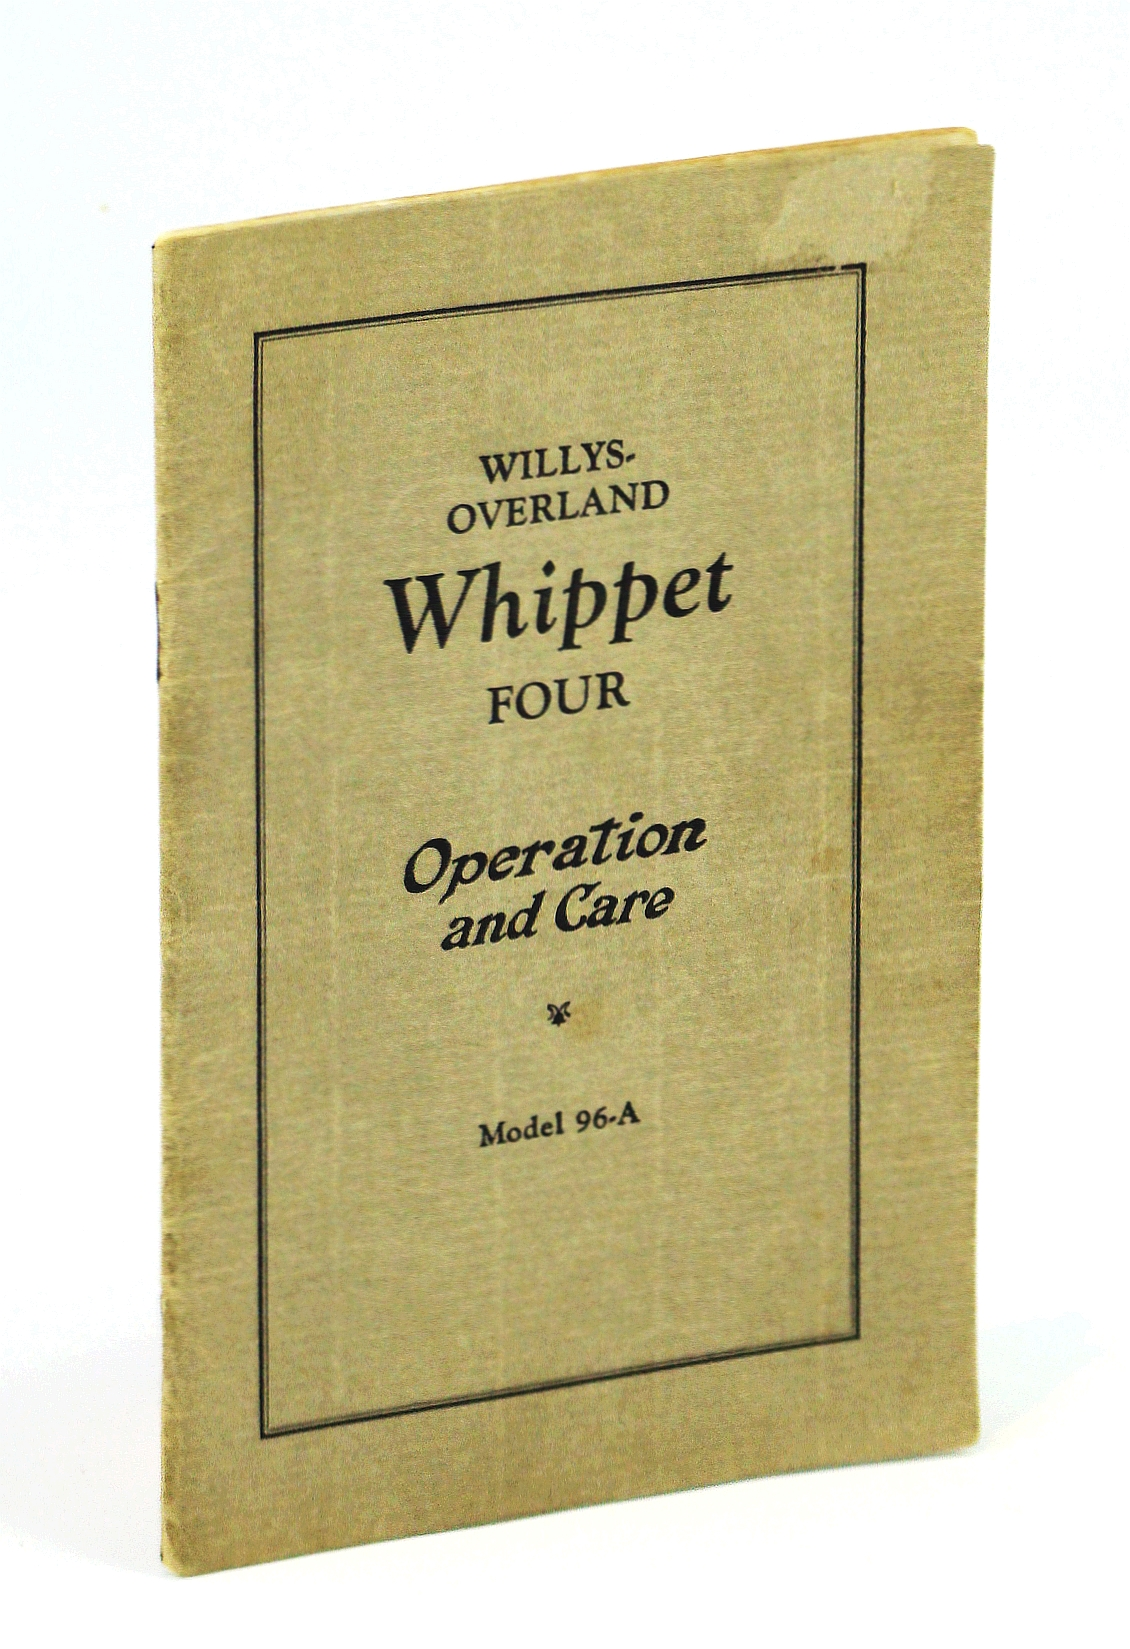 Image for Willys-Overland Whippet Four - Operation and Care, Model 96-A